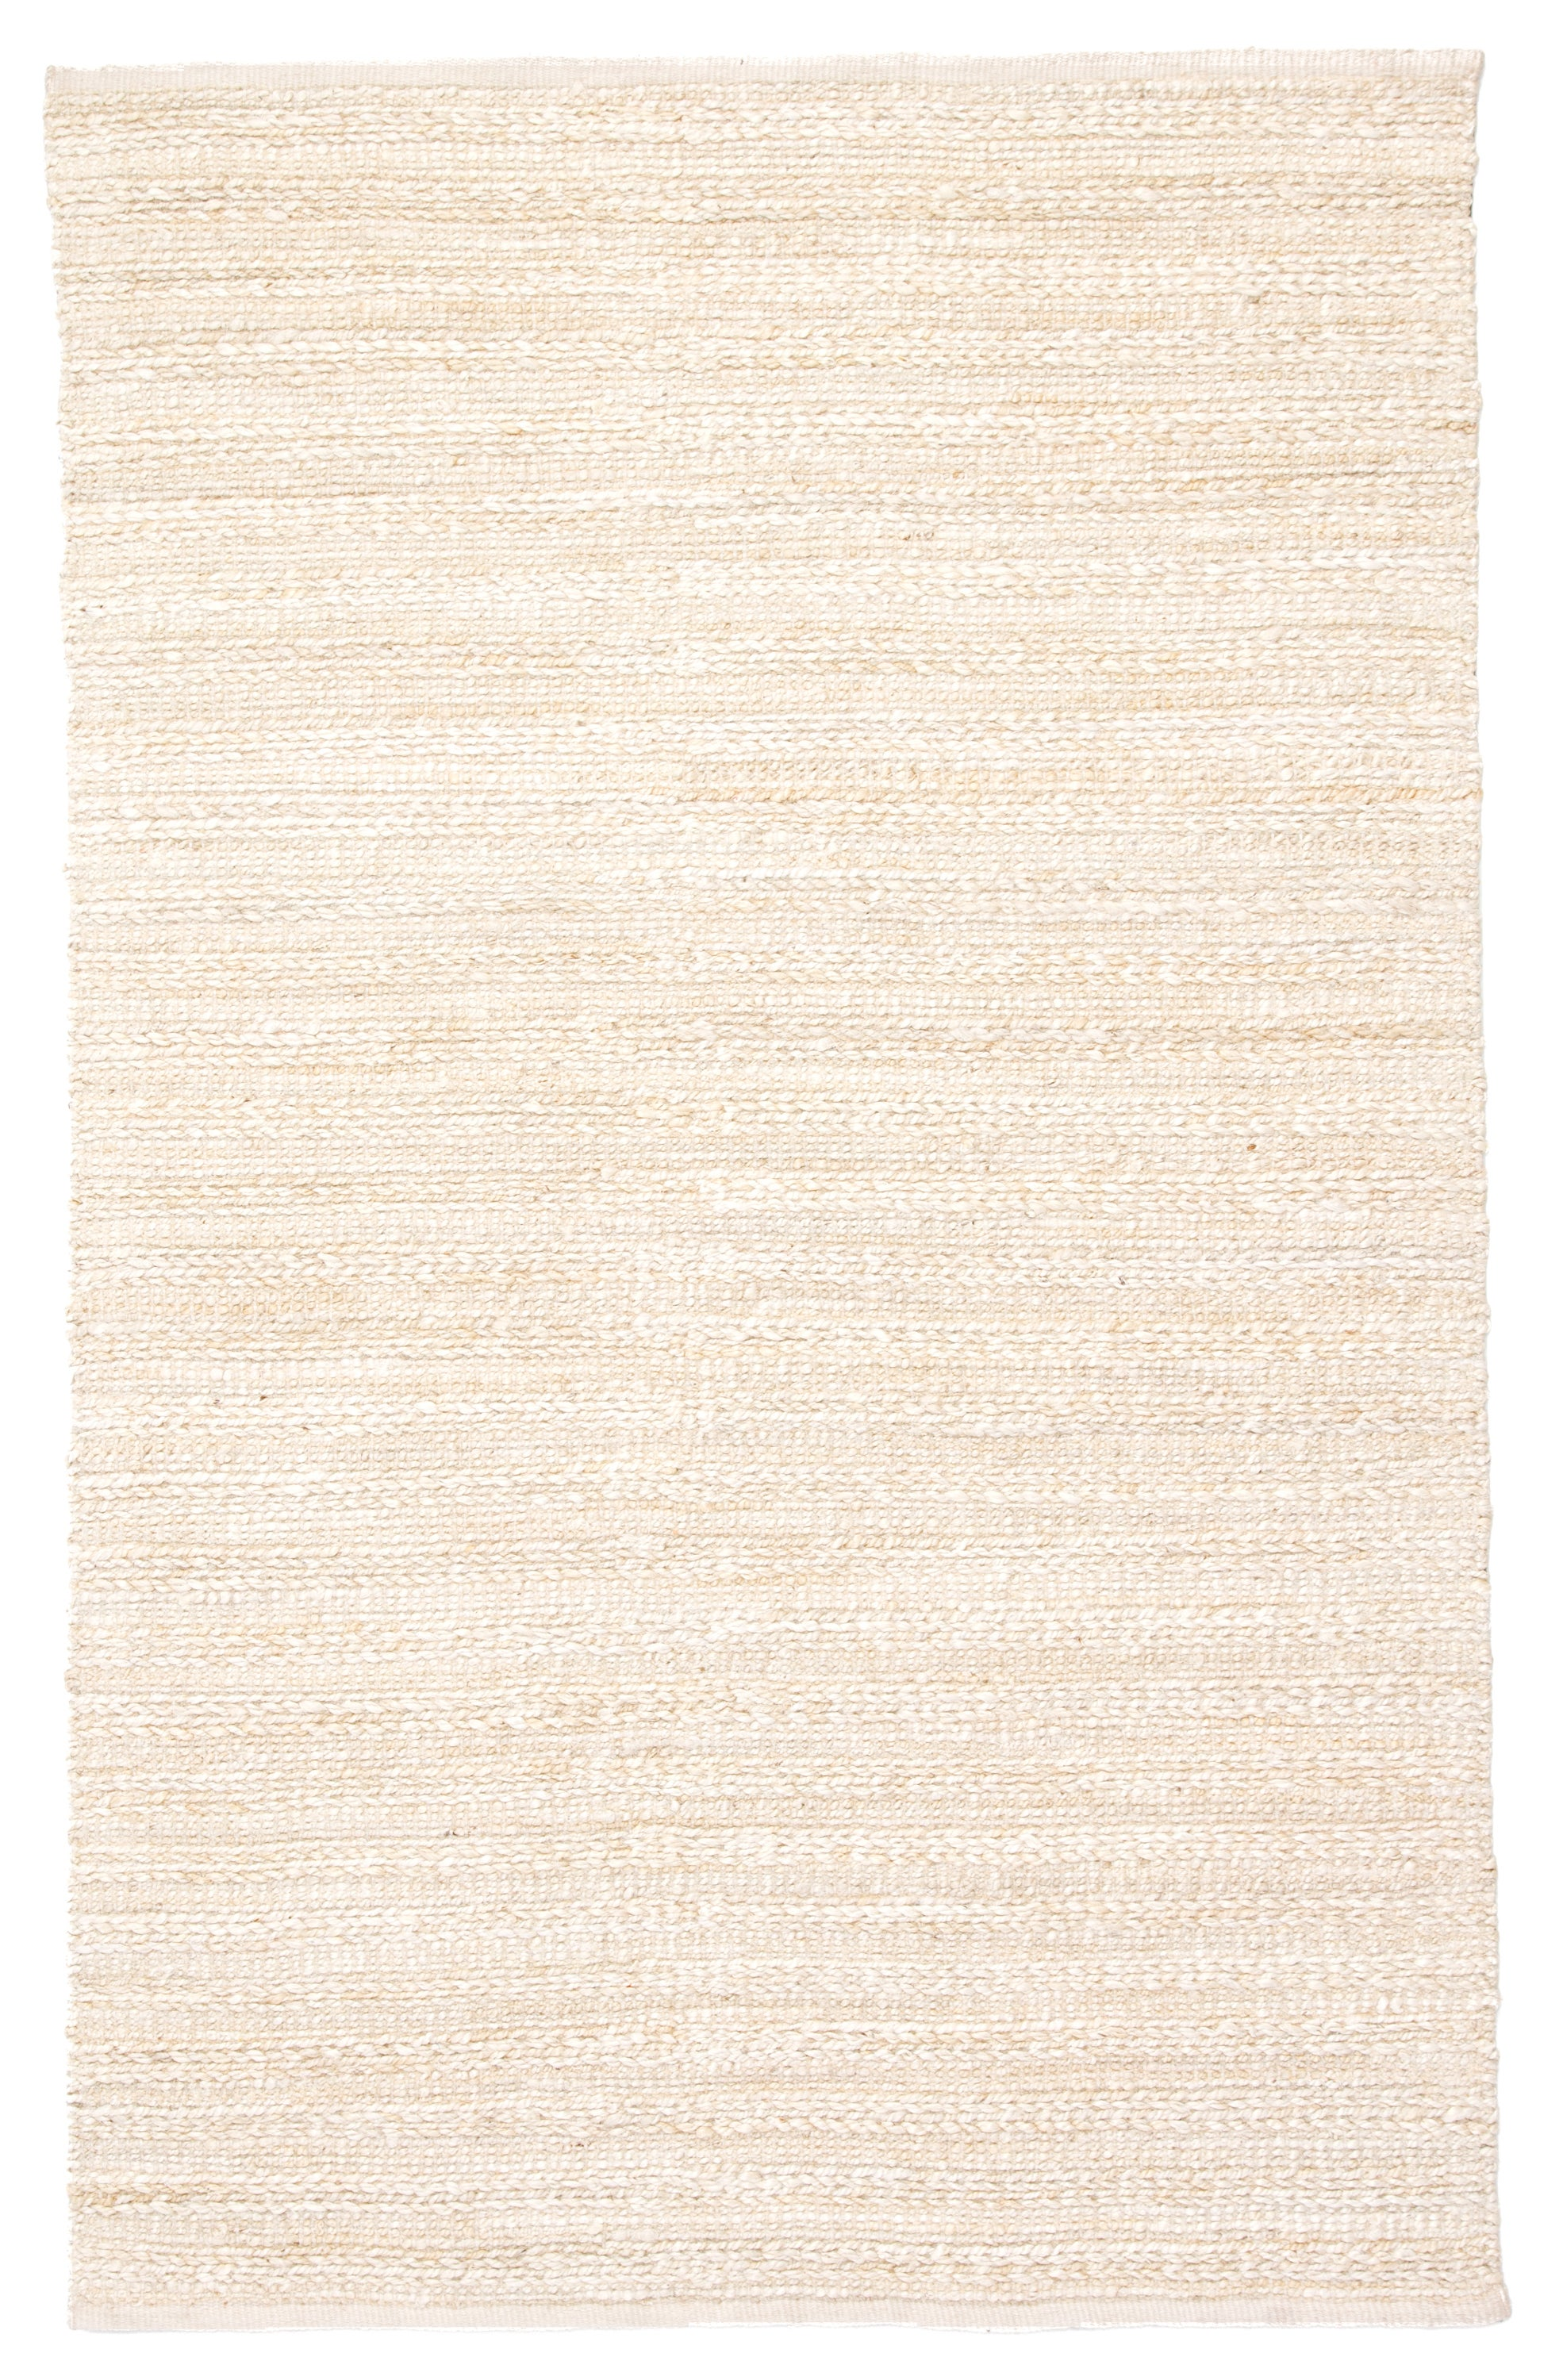 Rectangle White Solid Hand Woven Blends Transitional recommended for Kitchen, Bedroom, Bathroom, Dining Room, Office, Hallway, Living Room